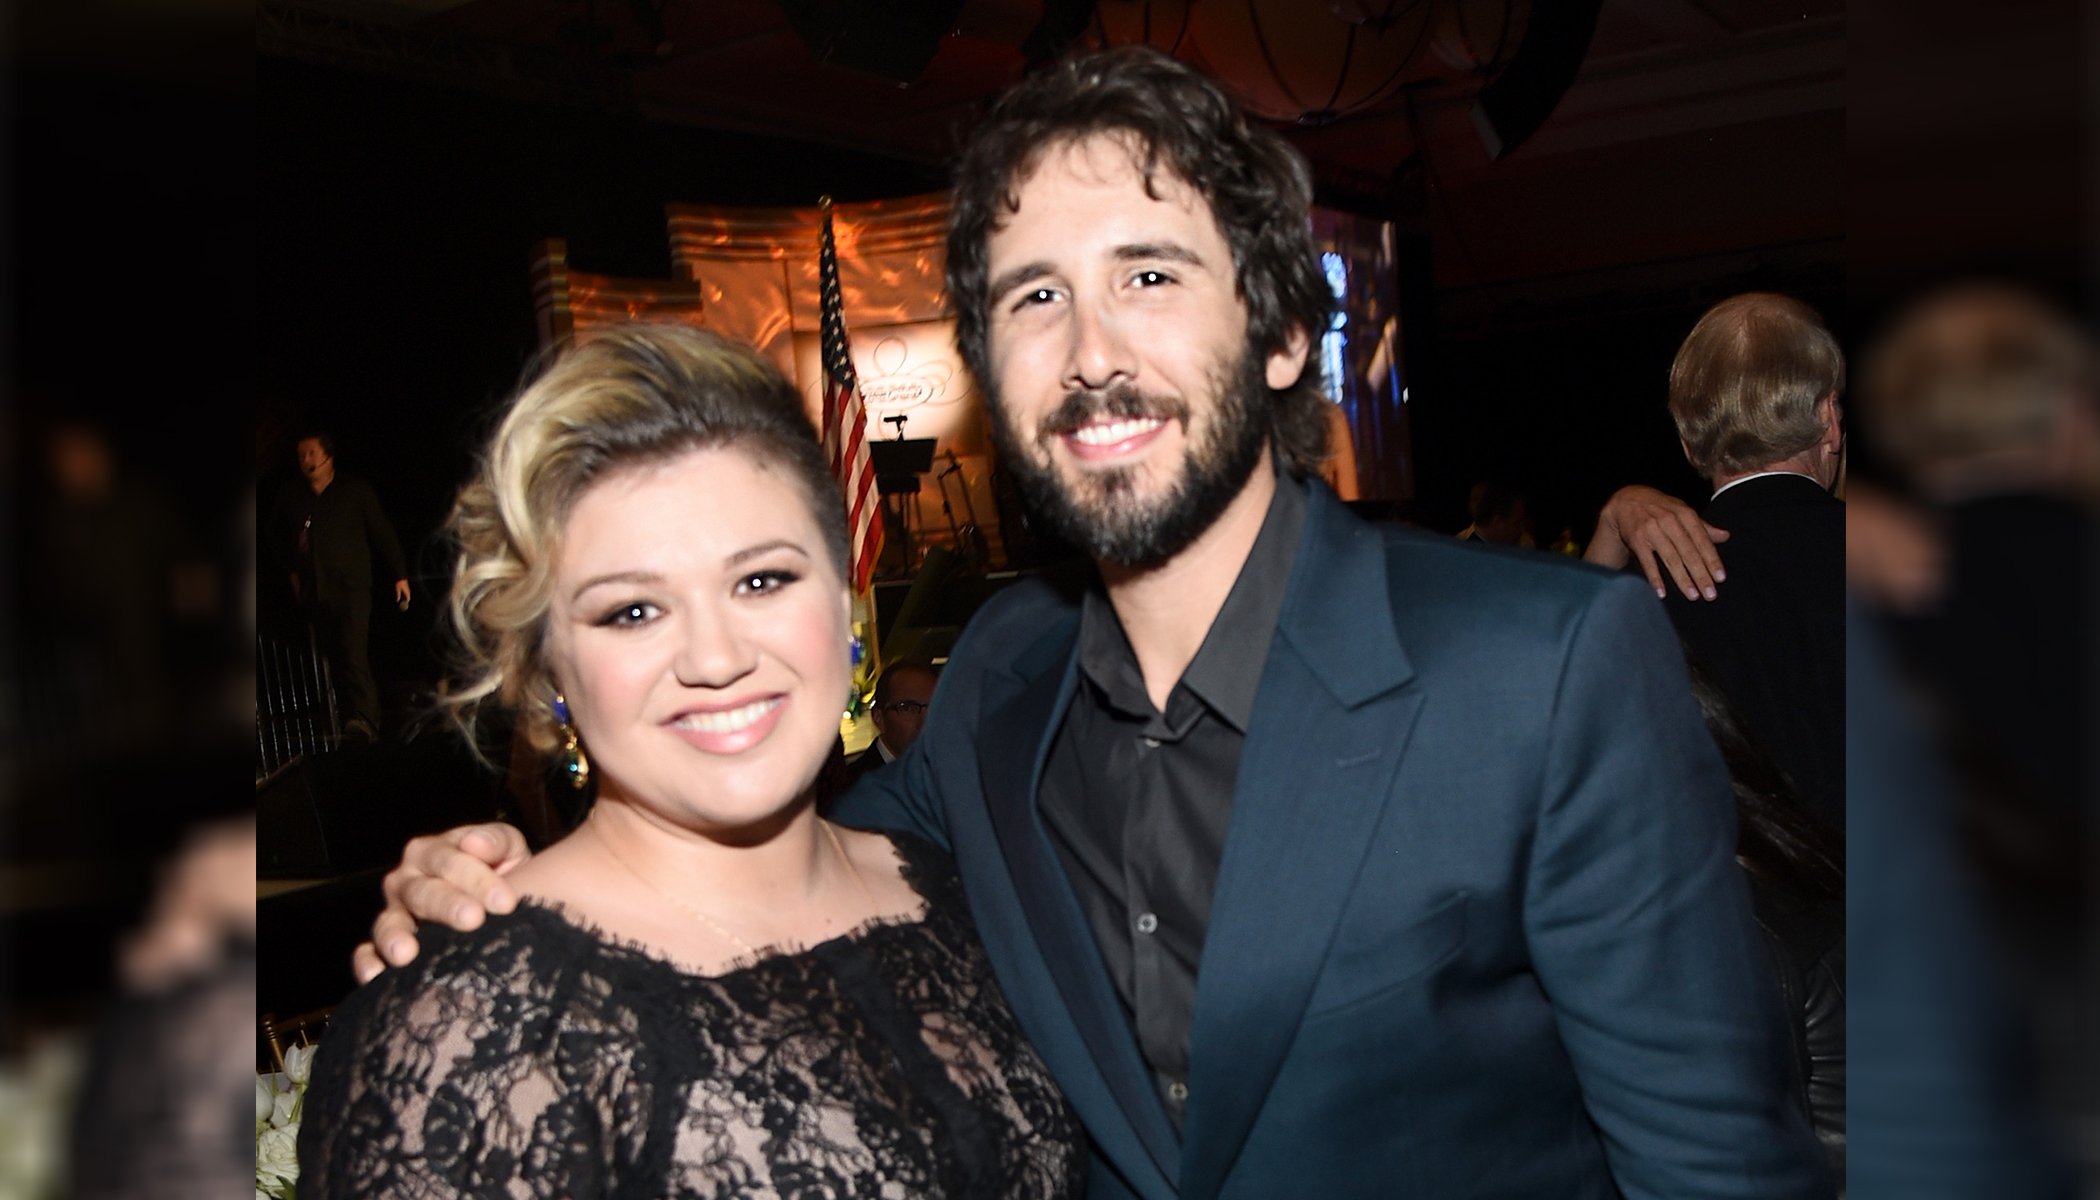 Josh Groban and Kelly Clarkson Charm Fans With 'Phantom of the Opera' in This 2015 Duet